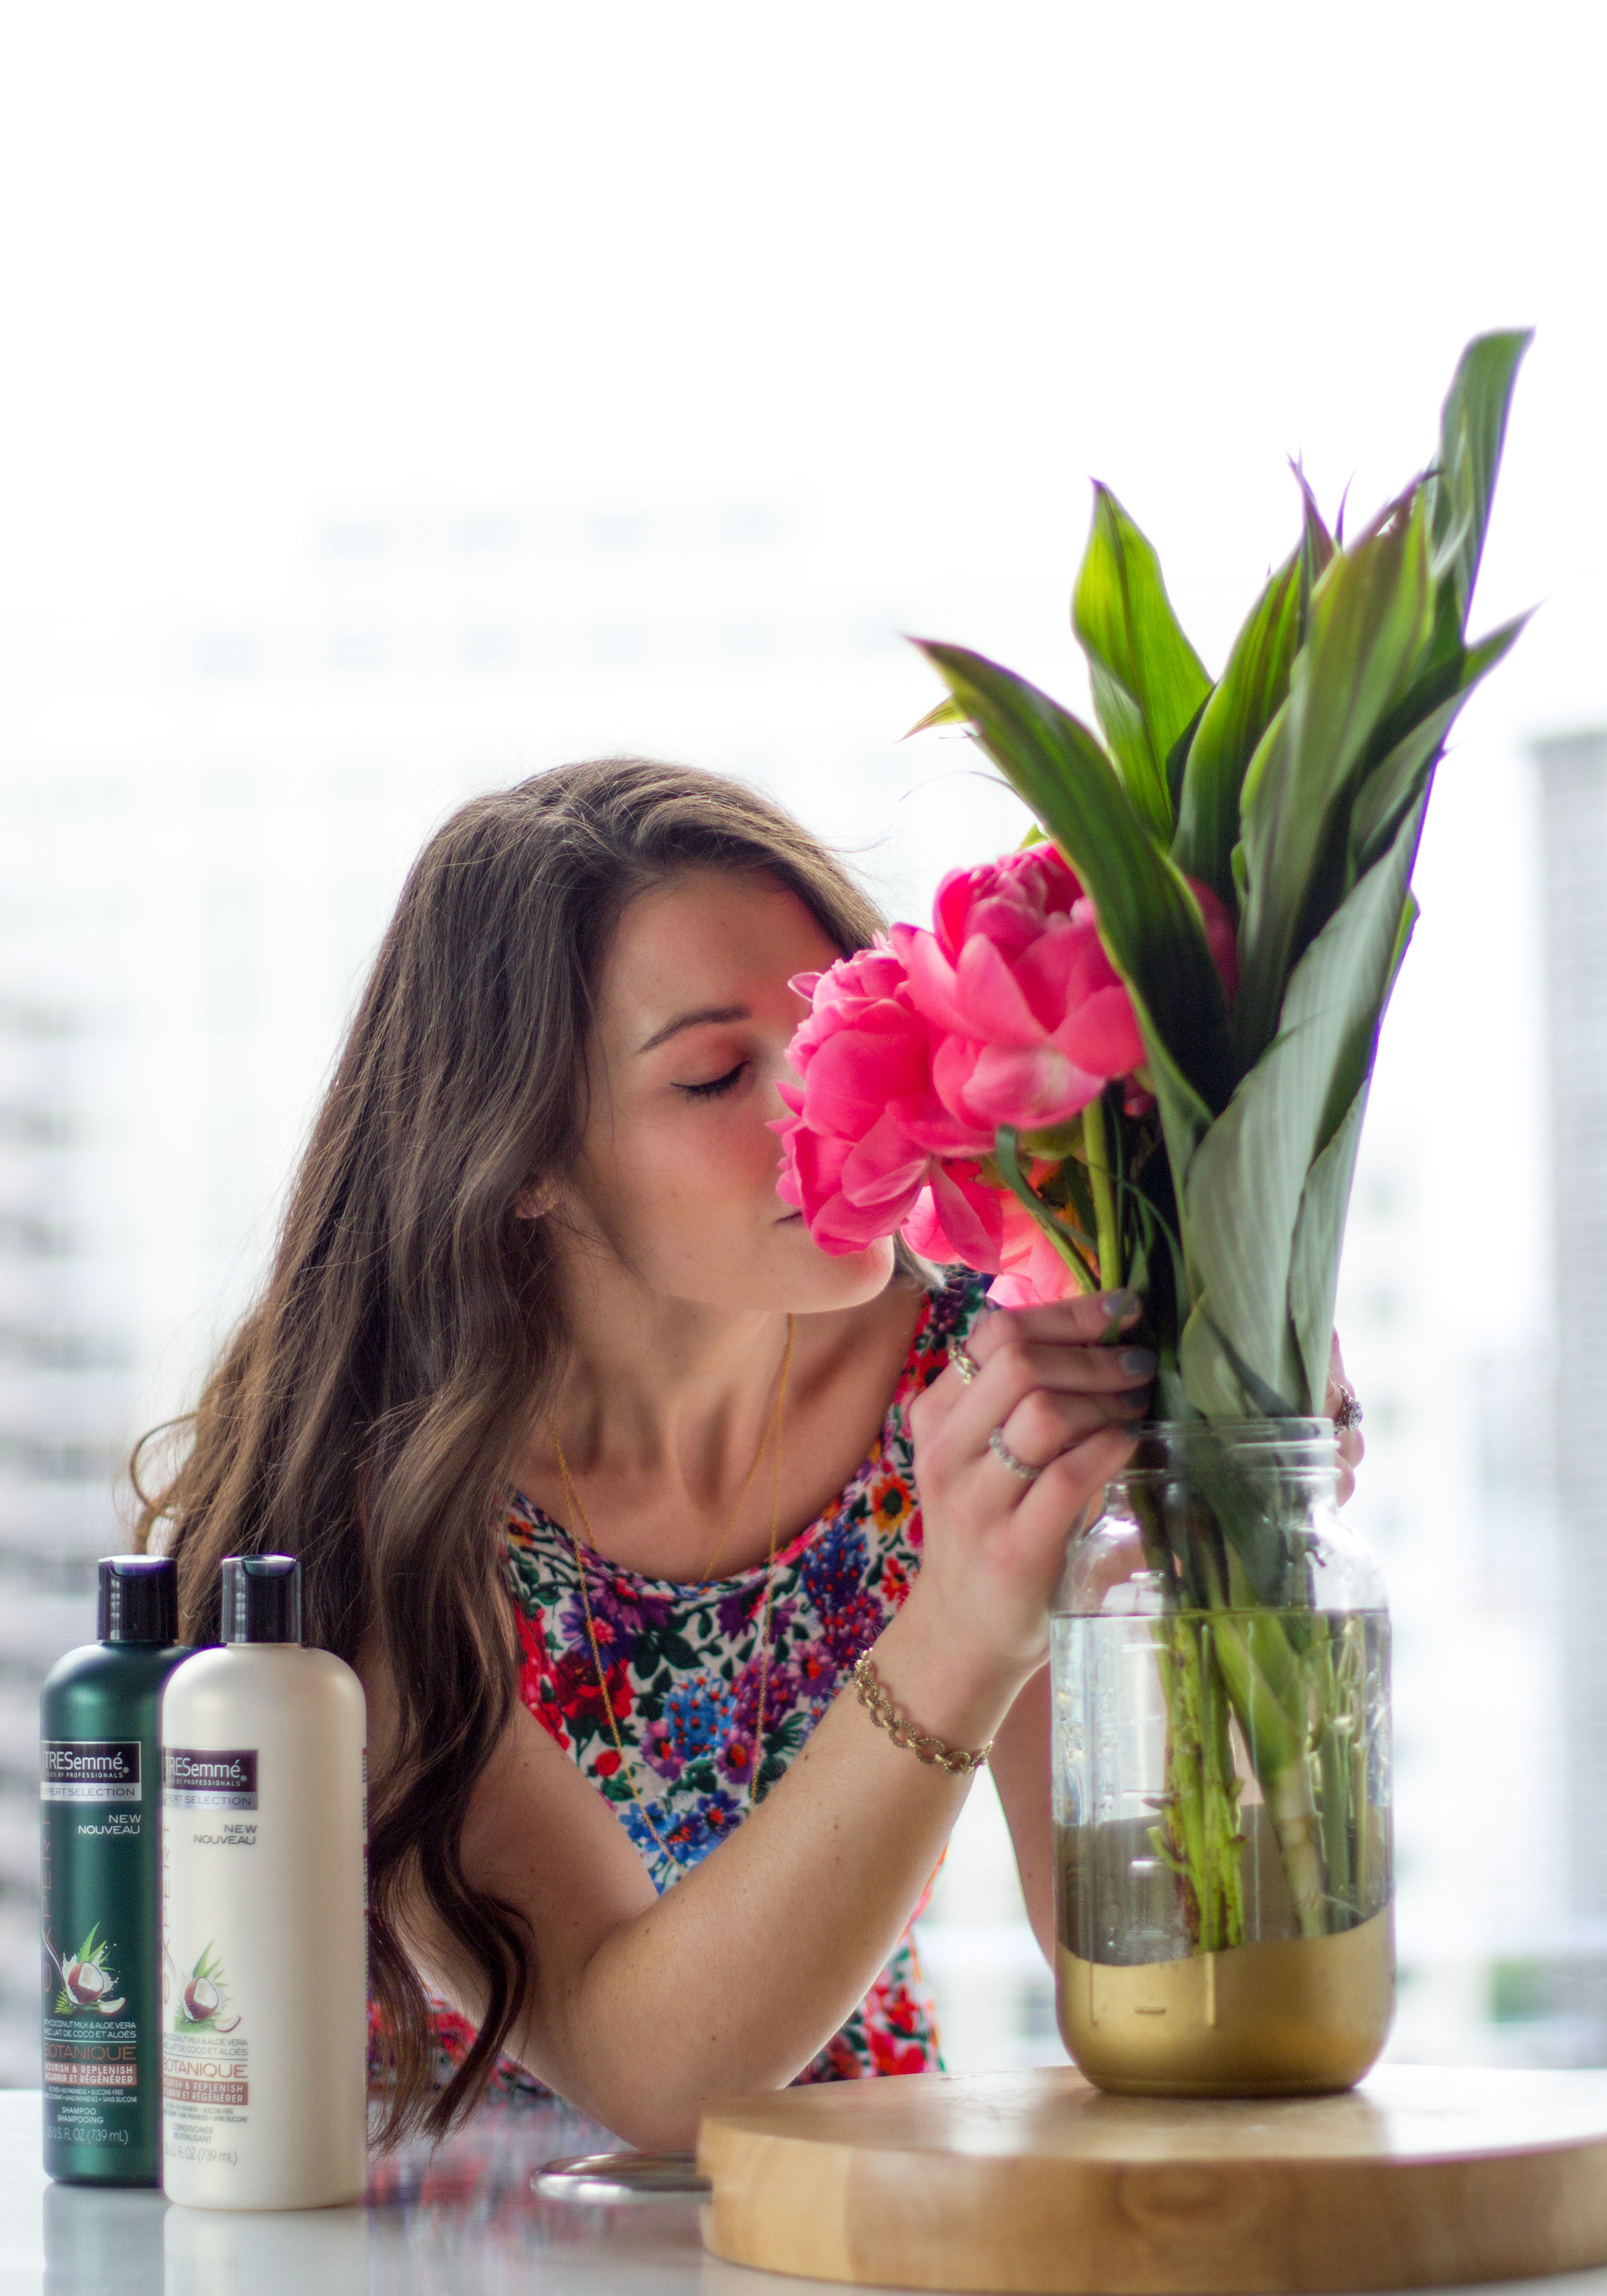 Inexpensive Tresemme Shampoo & Conditioner that smells amazing! Pink peonies with tropical leaves.  Tropical flower arrangement.